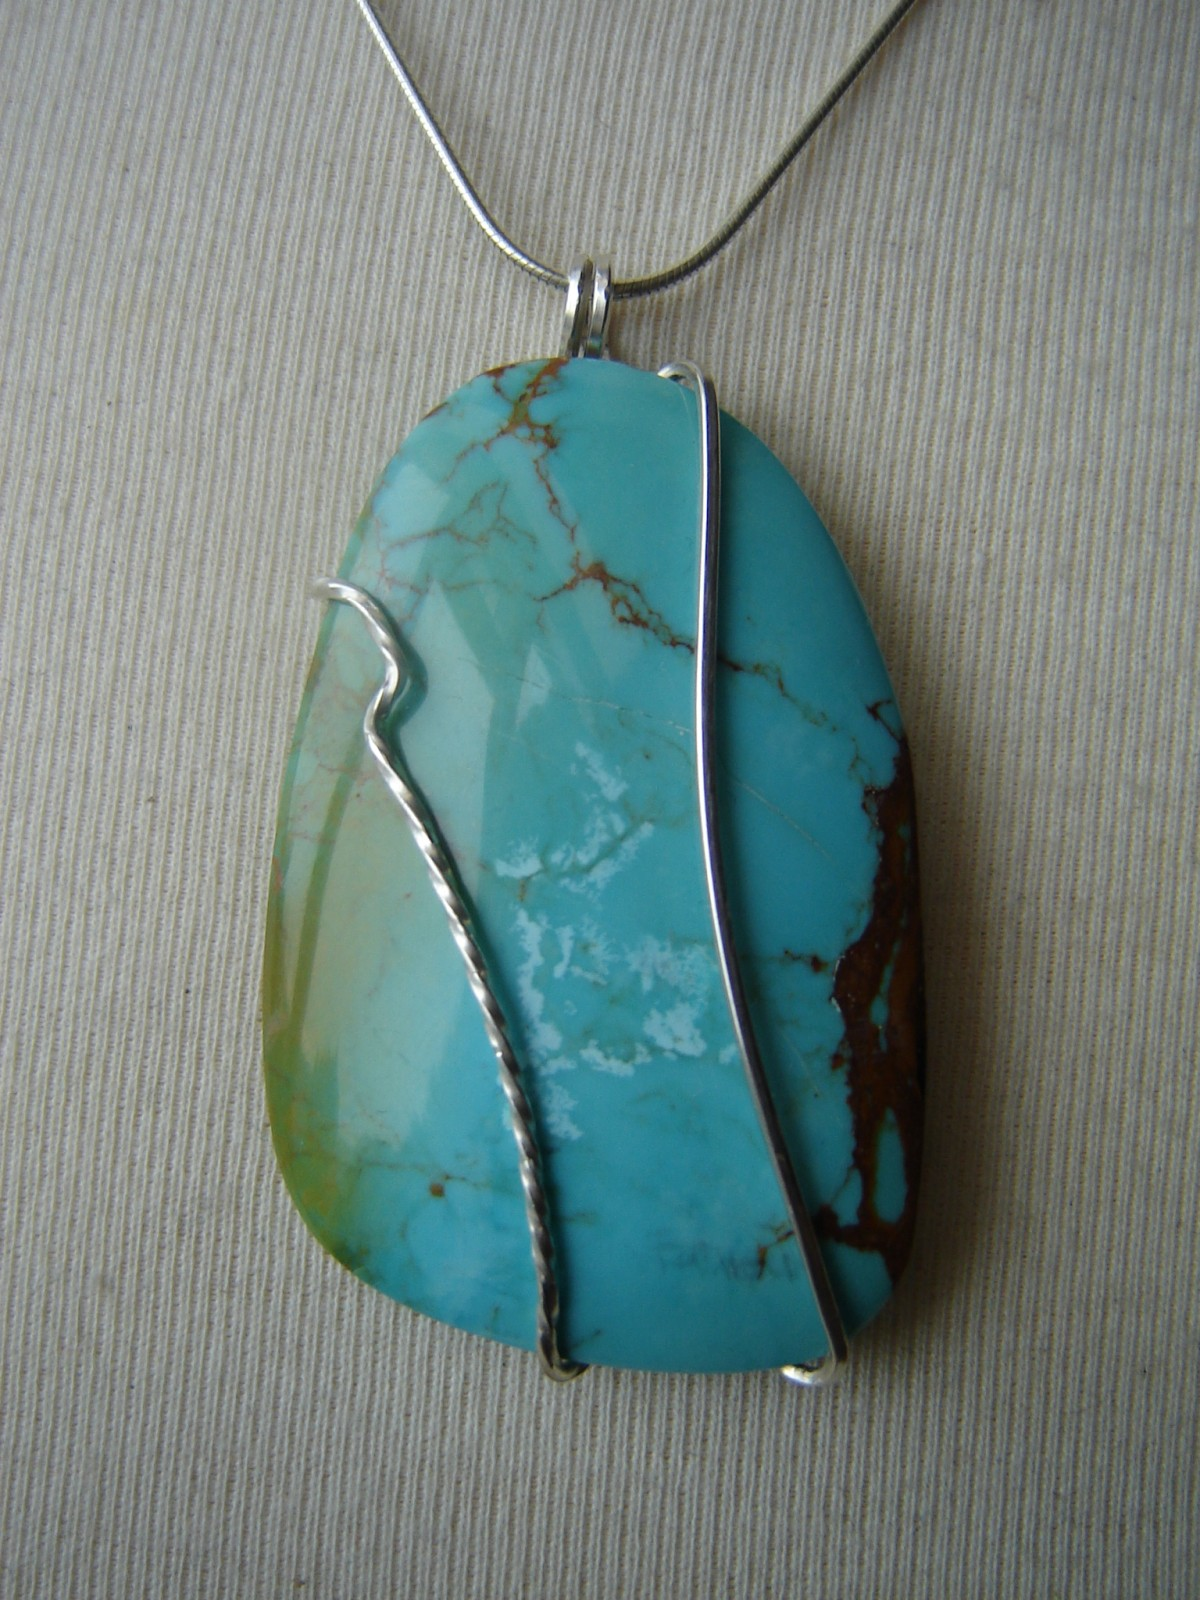 About Turquoise - Make Turquoise Jewelry | Jewelry Making Blog ...